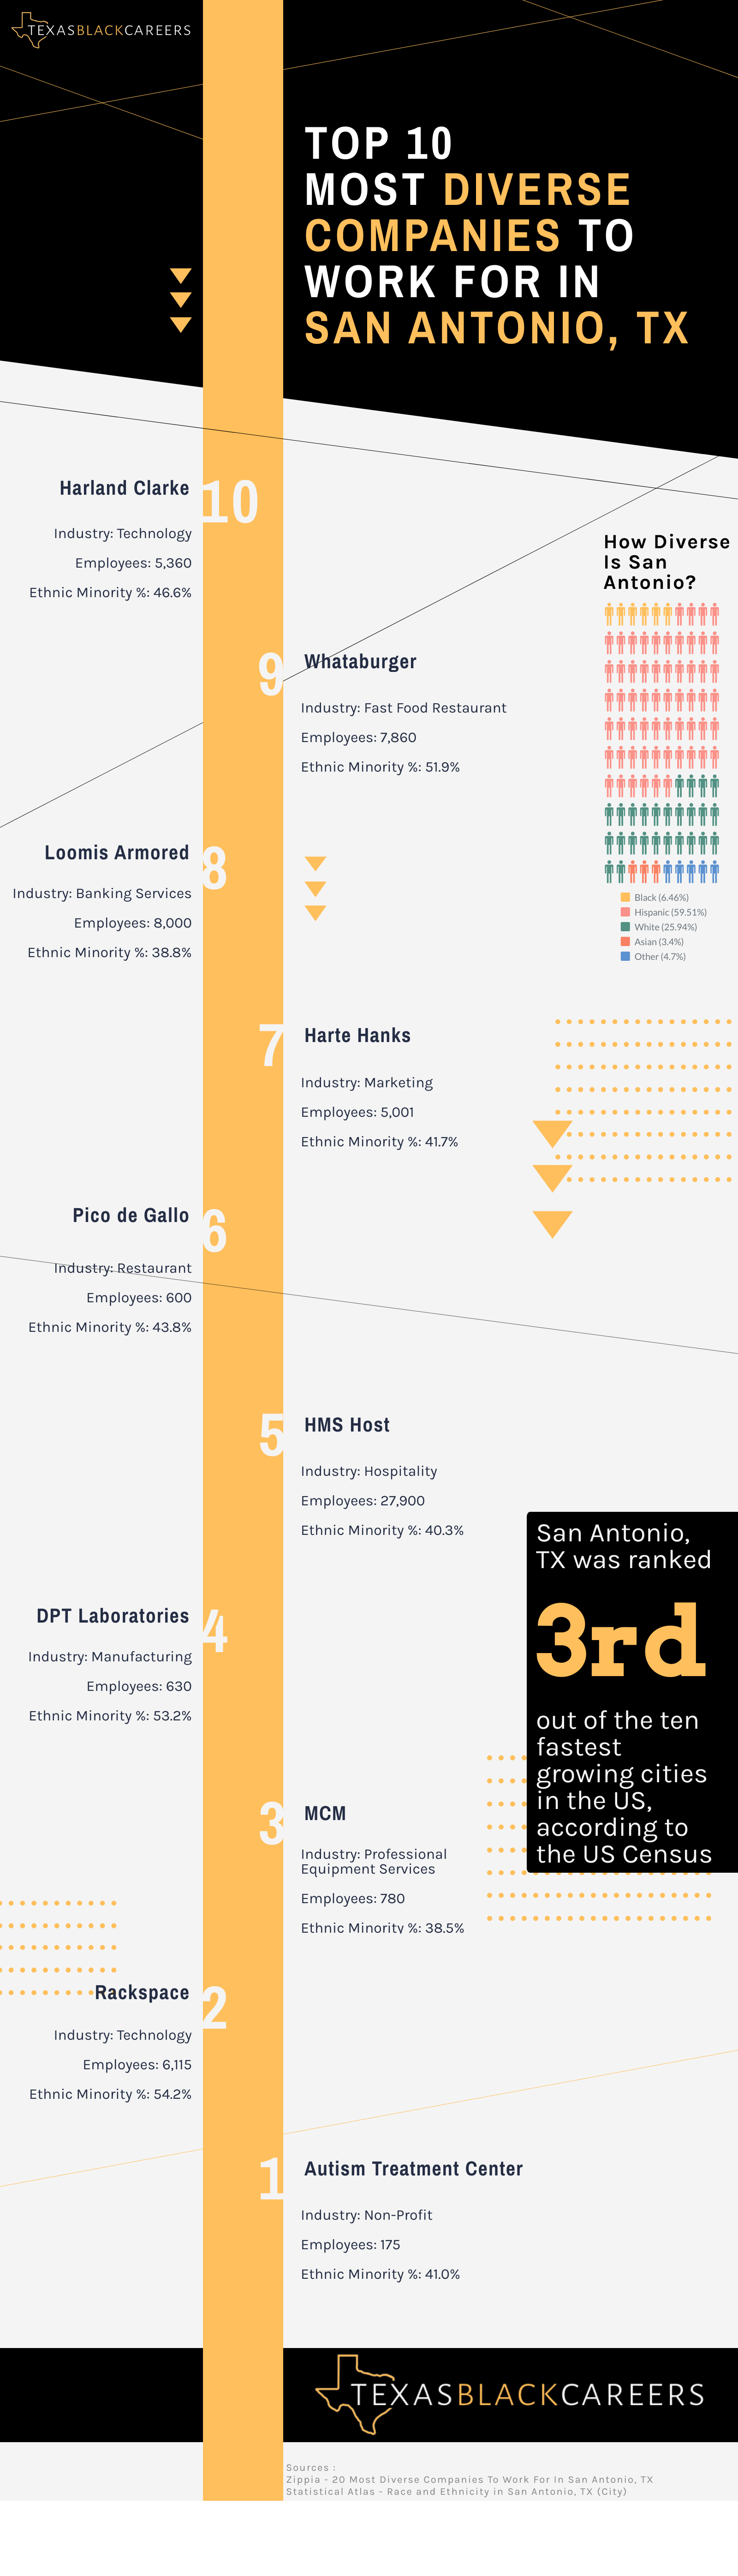 top 10 diverse companies in San Antonio infographic